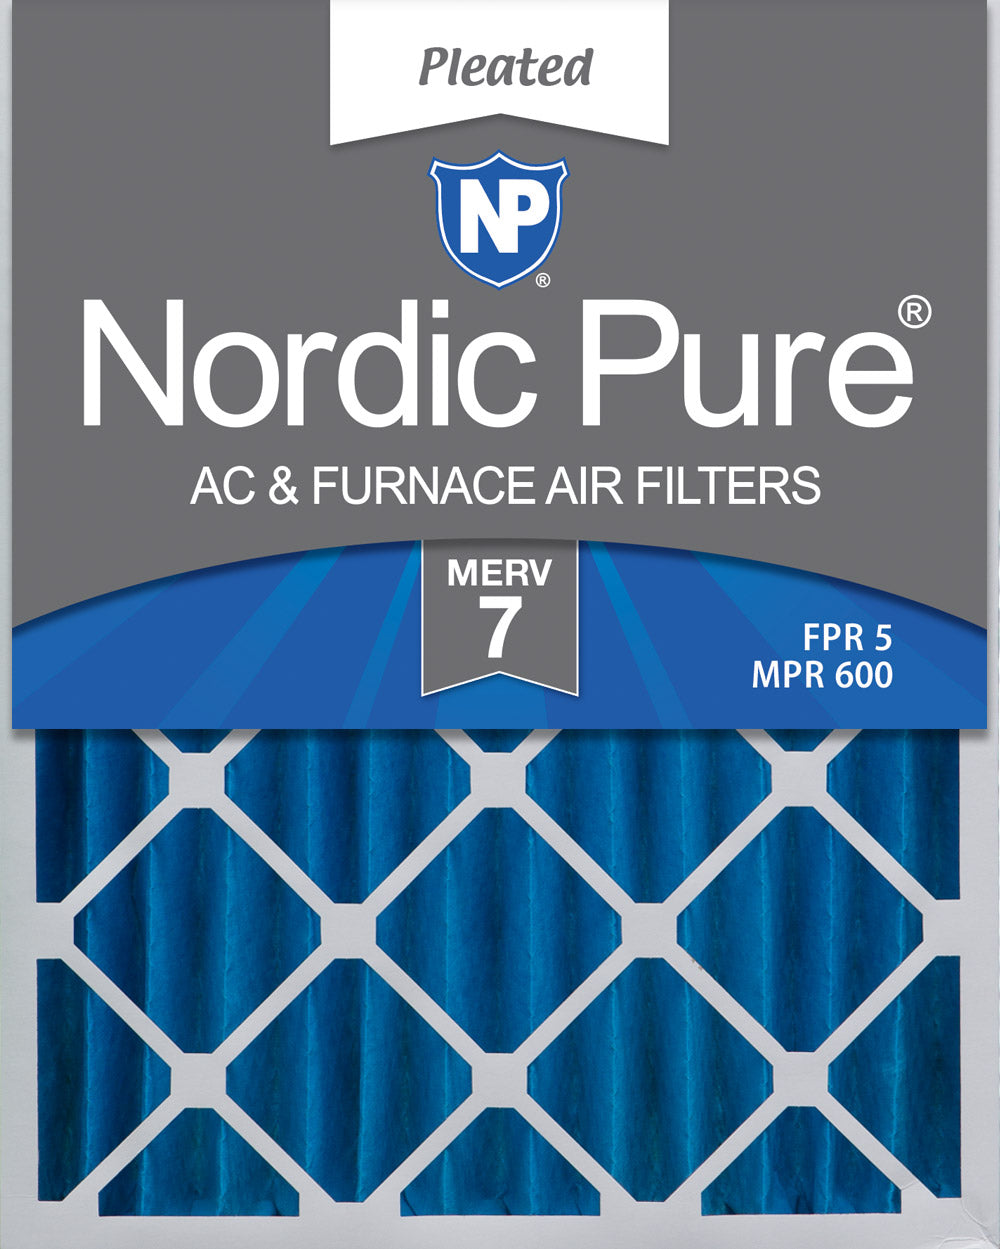 20x25x4 (3 5/8) Pleated MERV 7 Air Filters 6 Pack